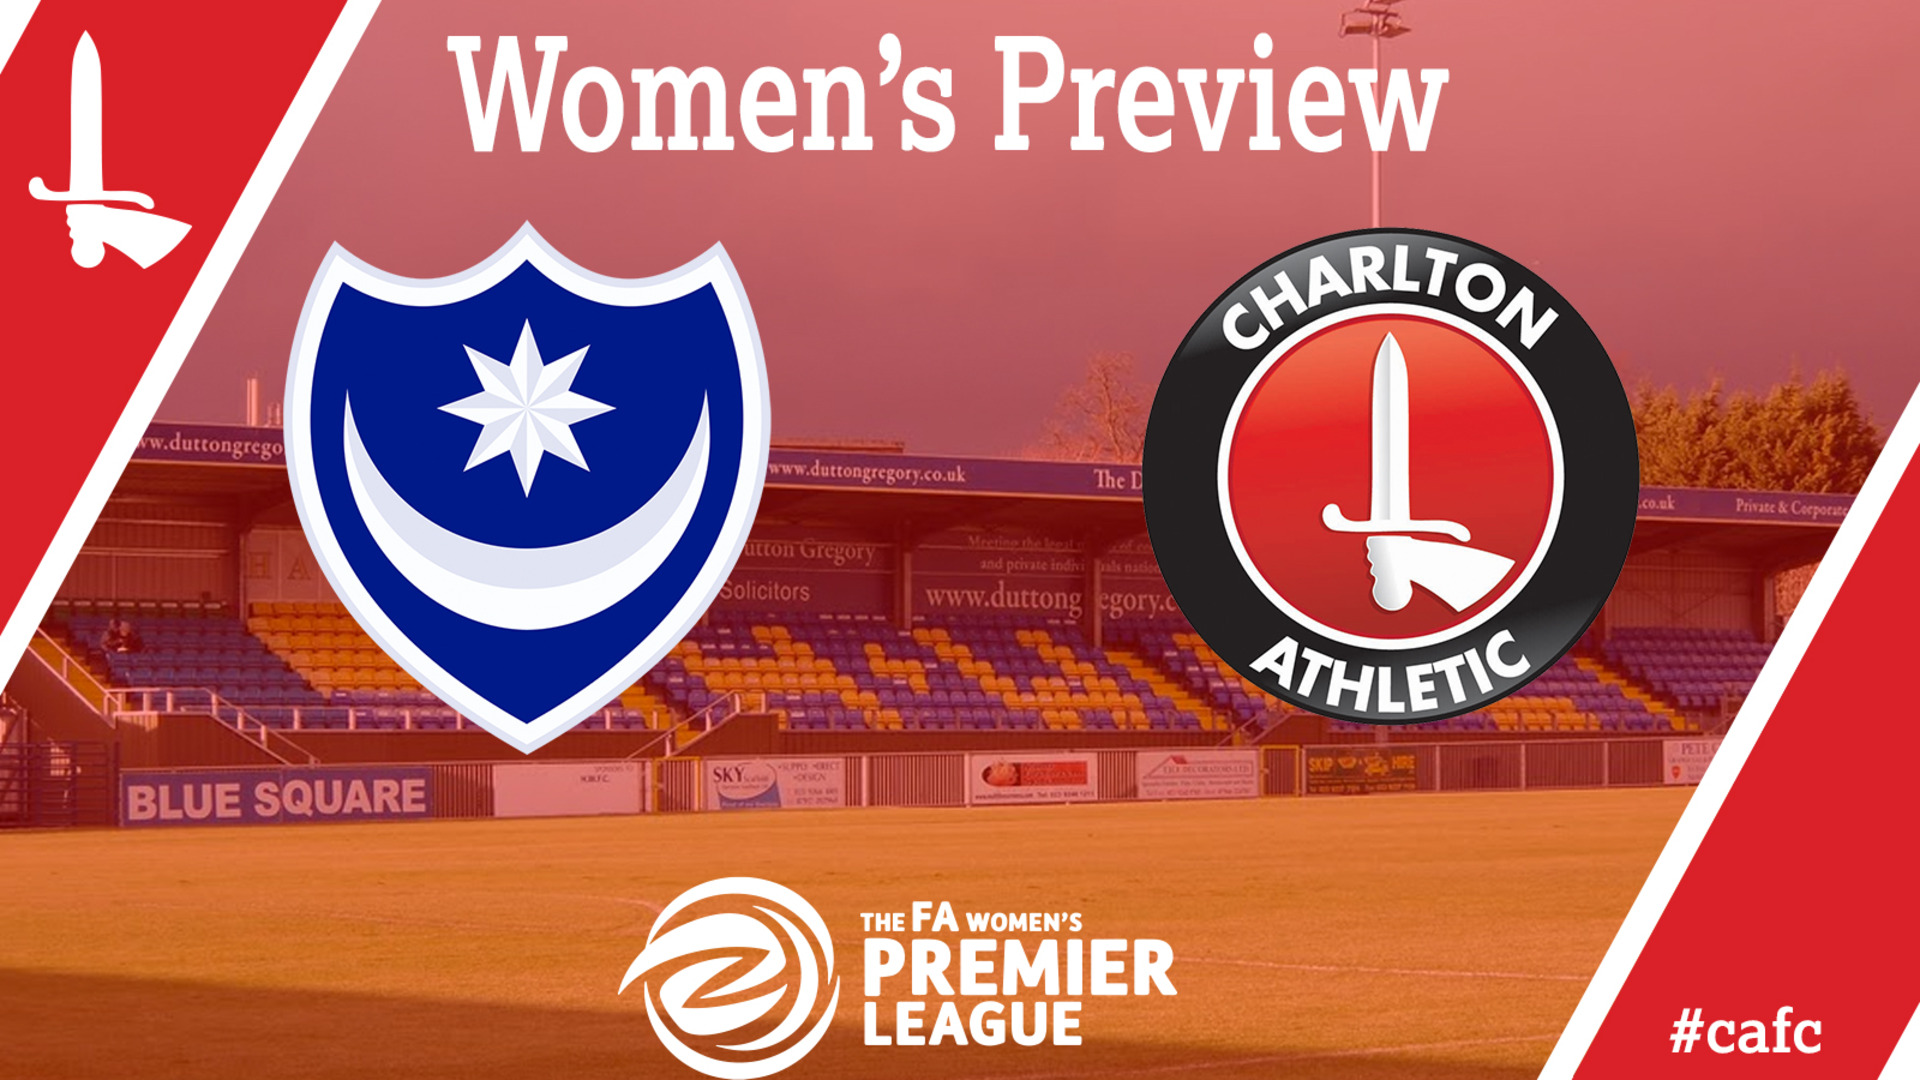 WOMEN'S PREVIEW | Portsmouth Ladies vs Charlton Women